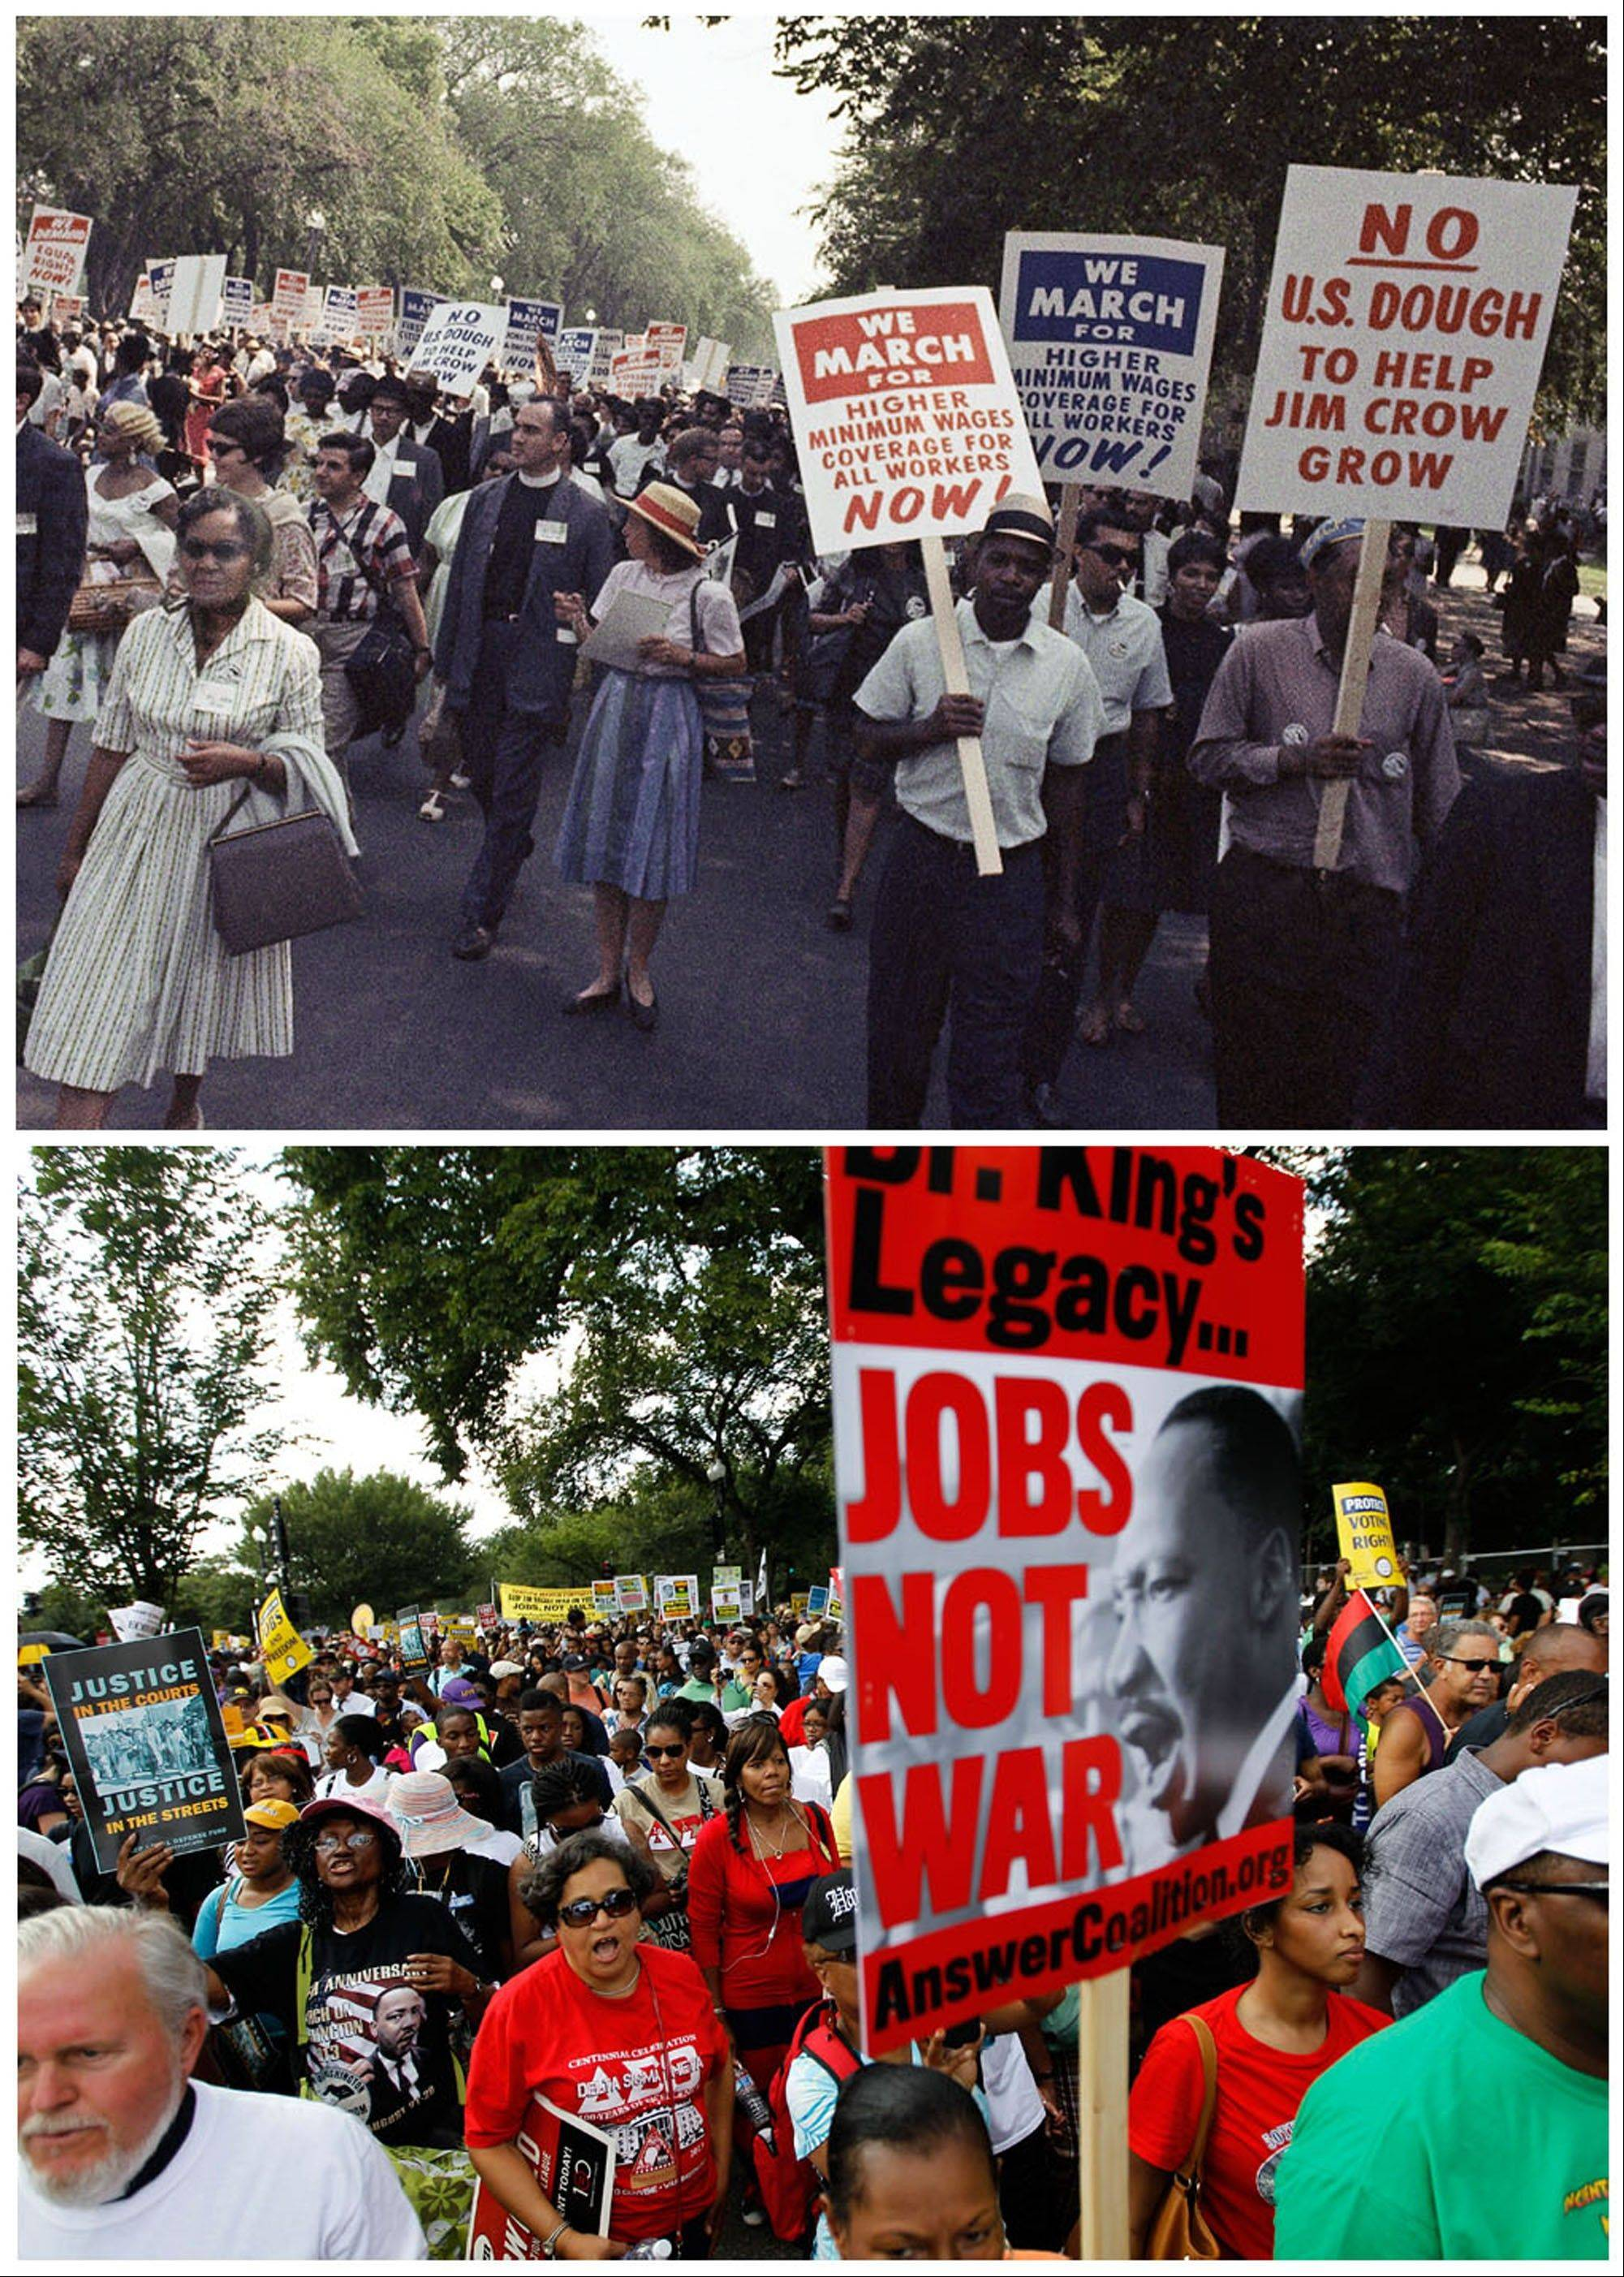 At top, a large crowd marches for civil rights in Washington on Aug. 28, 1963; and at bottom, demonstrators march towards the Martin Luther King Junior Memorial during a rally to commemorate the 50th anniversary of the 1963 march on Saturday, Aug. 24, 2013.